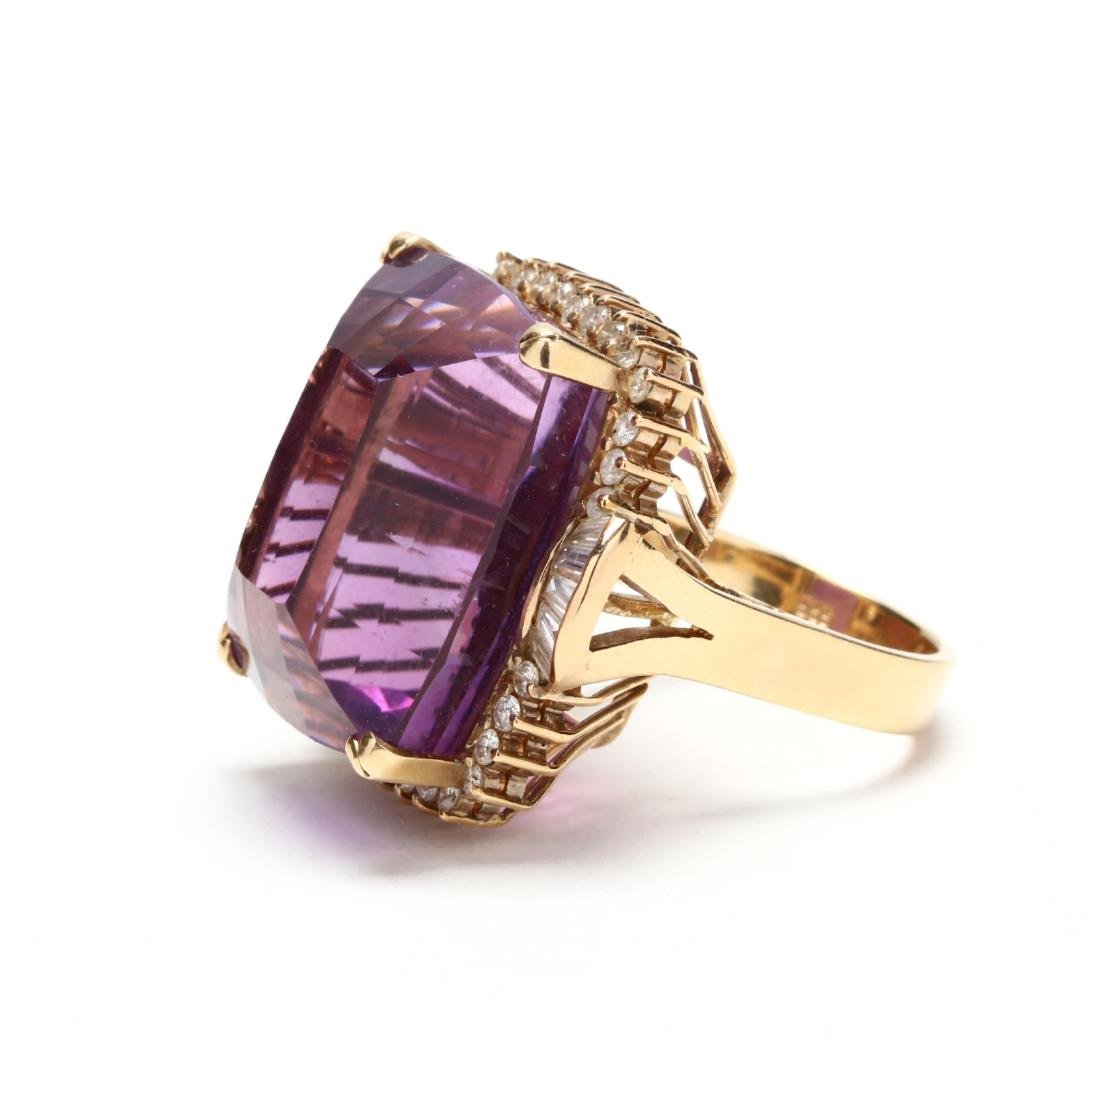 14KT Gold Amethyst and Diamond Ring - 5